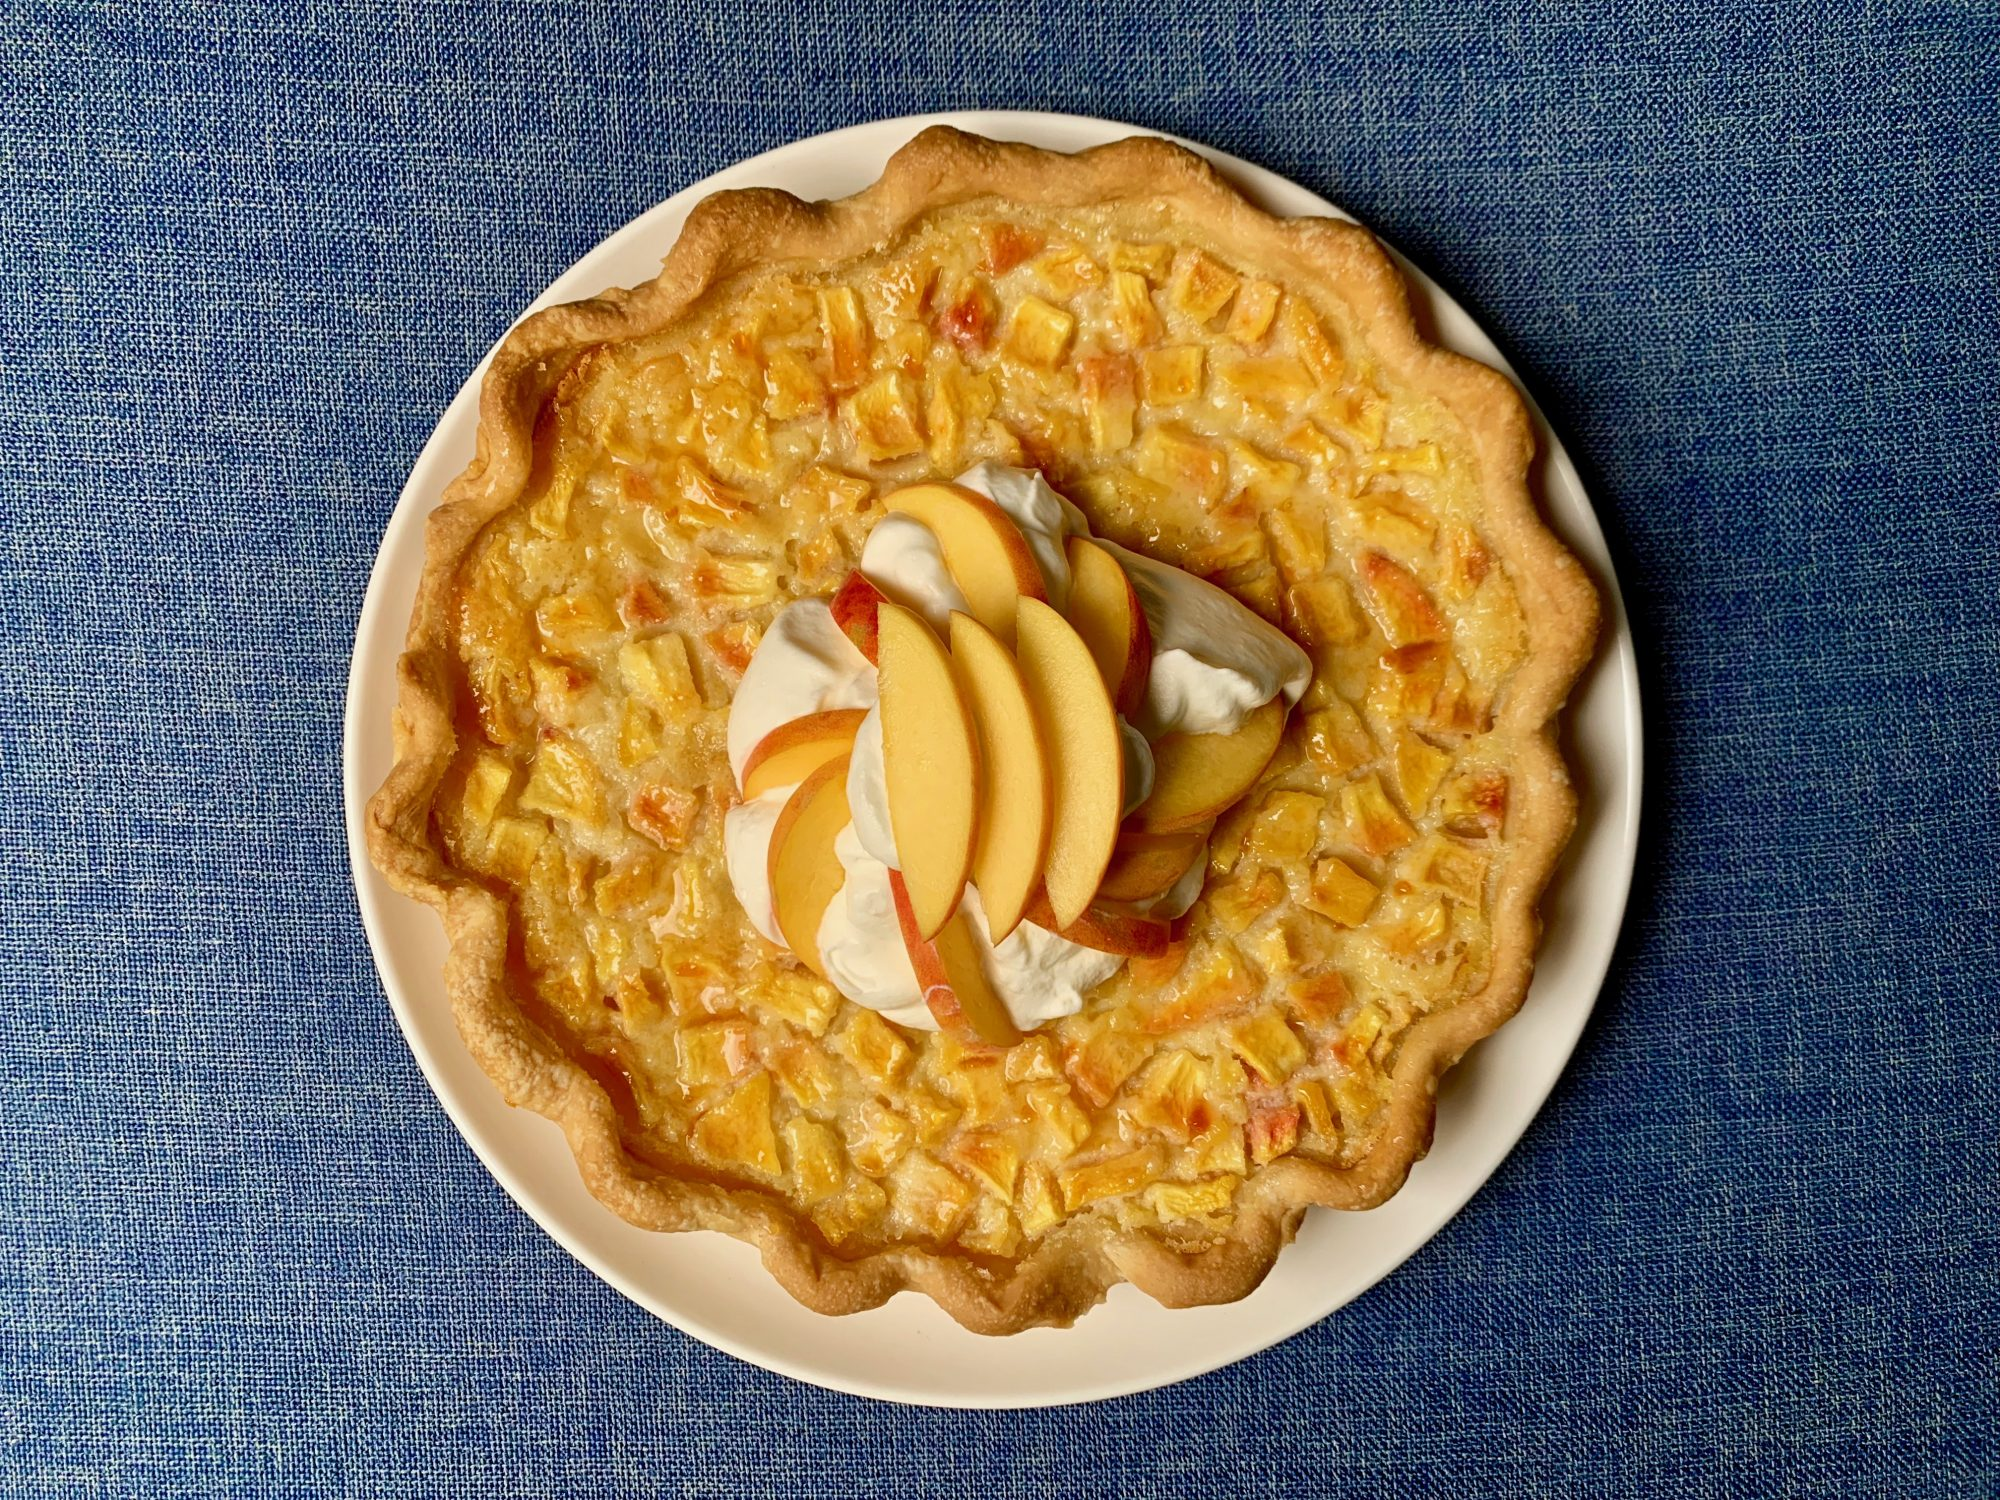 August: Peaches and Cream Pie